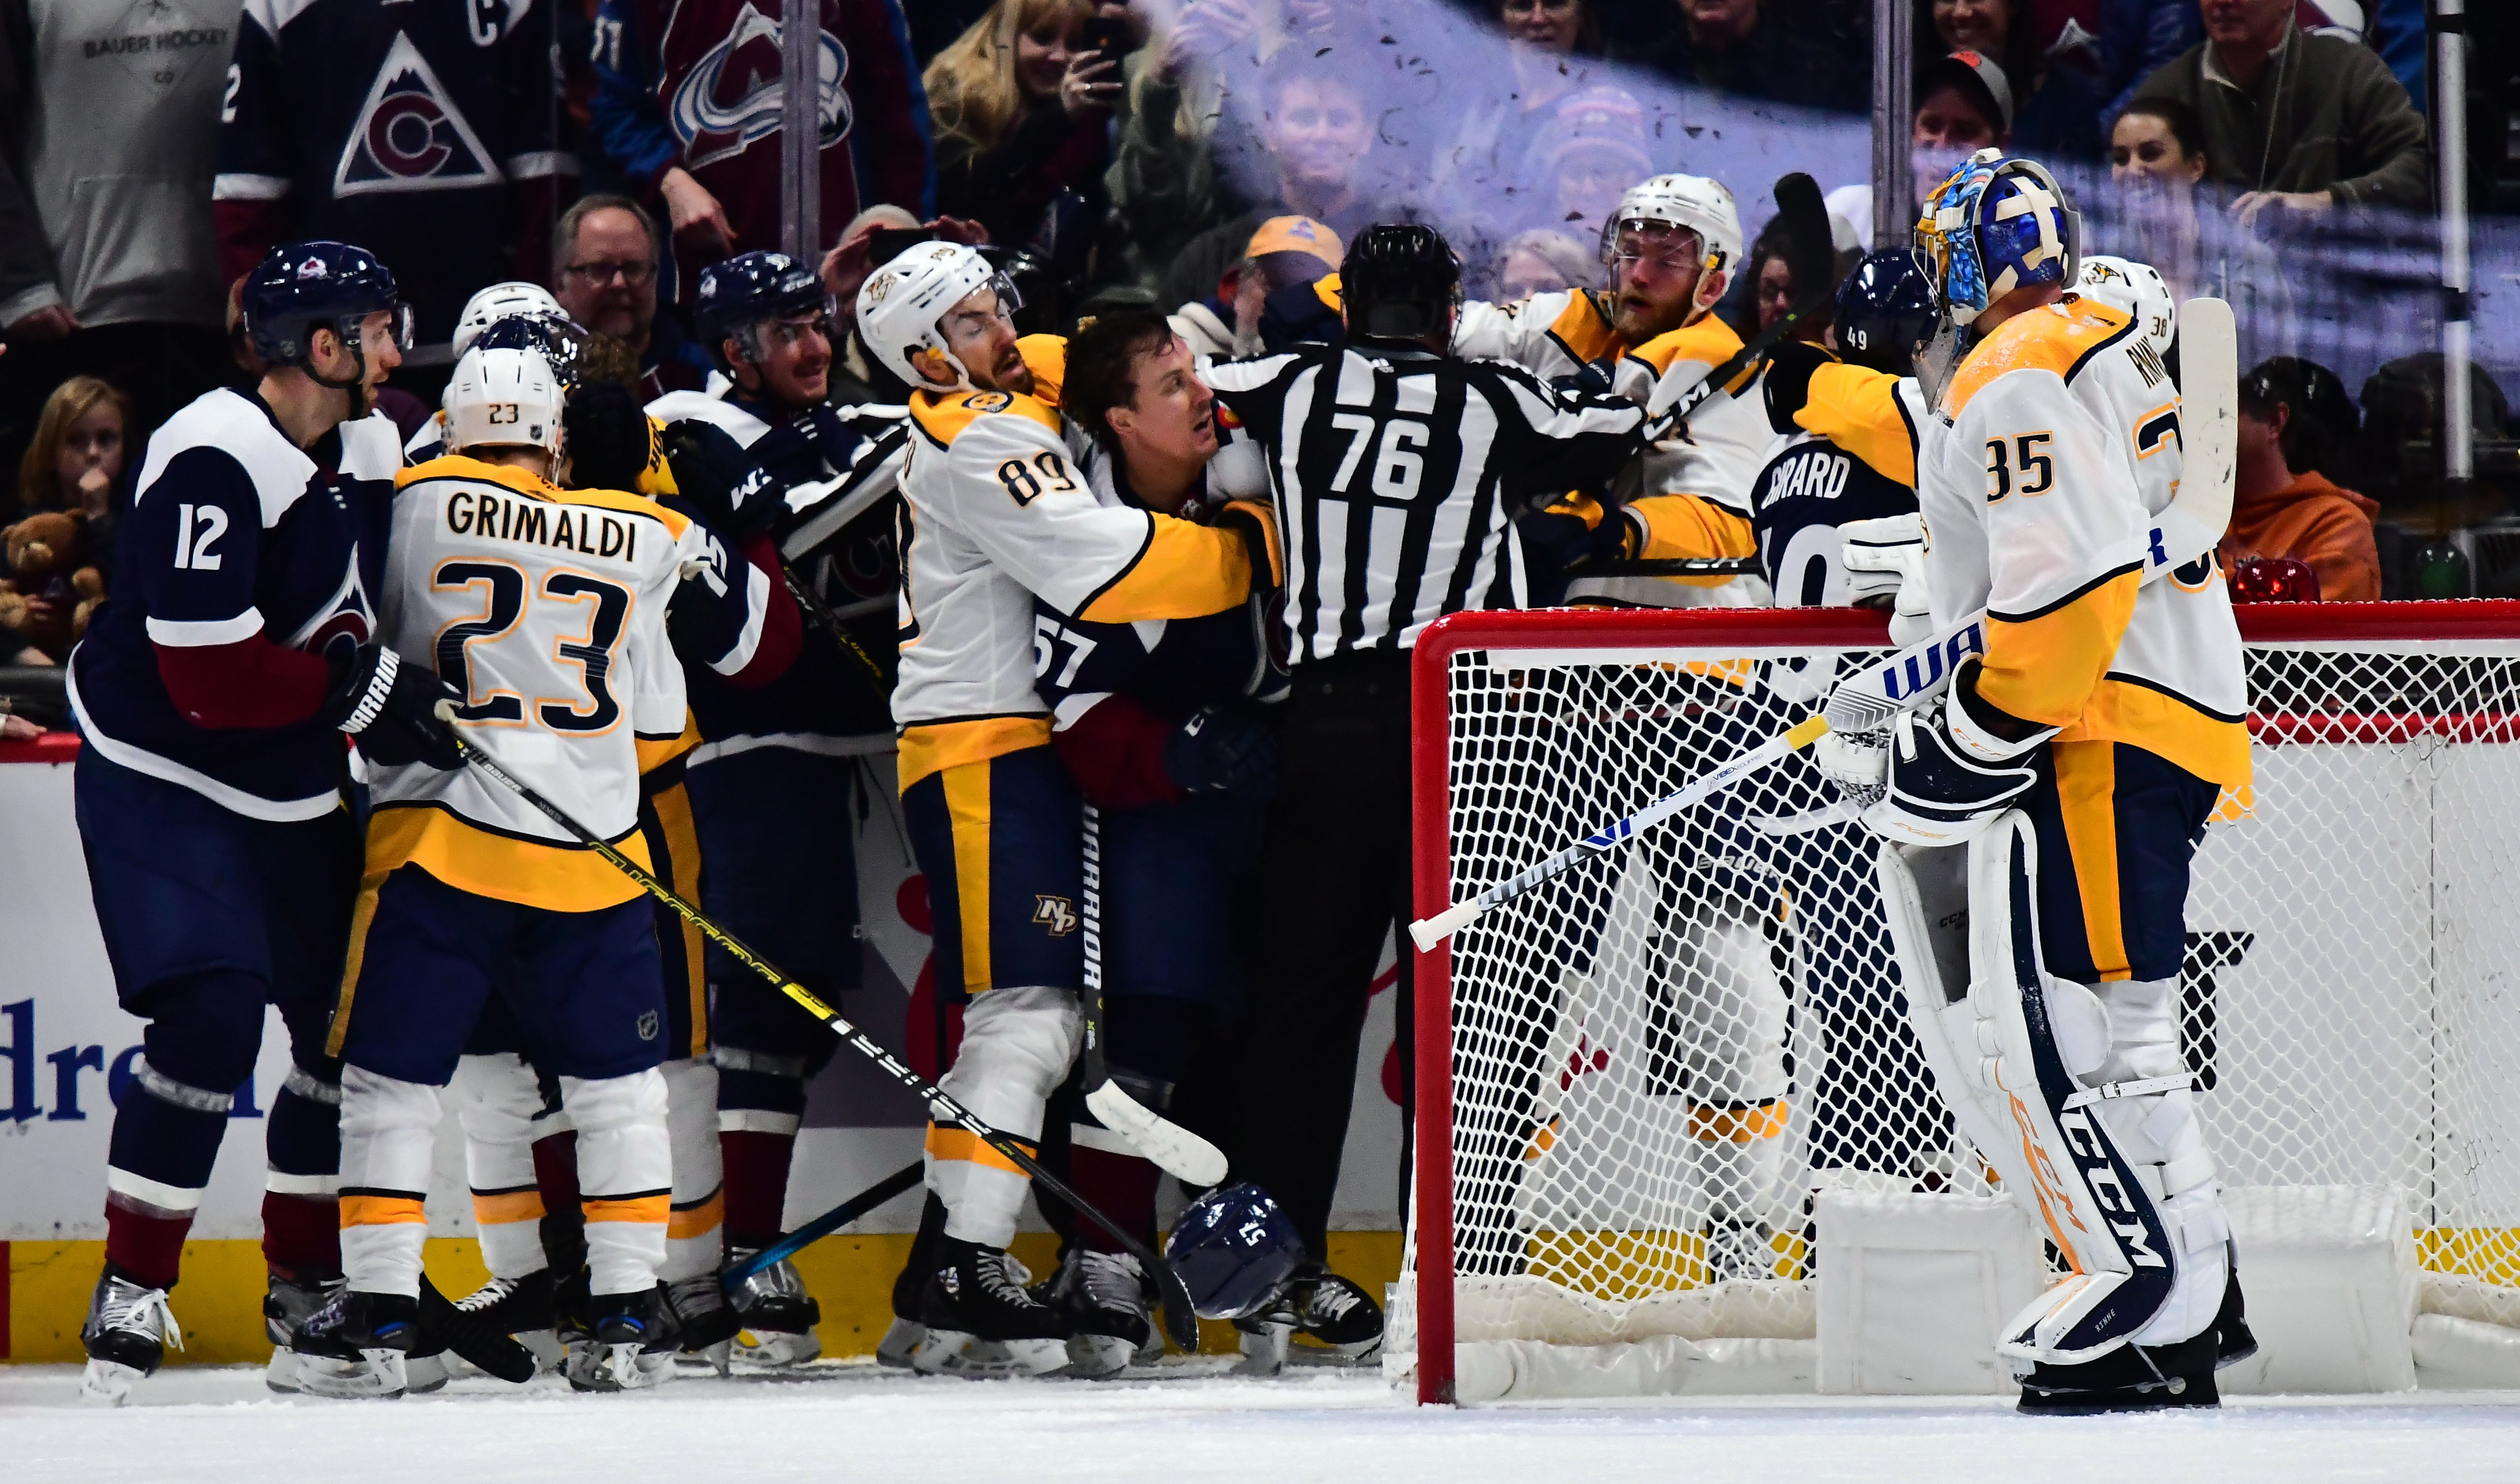 Colorado Avalanche Get Rinne D Lose To Nashville 4 1 Mile High Hockey